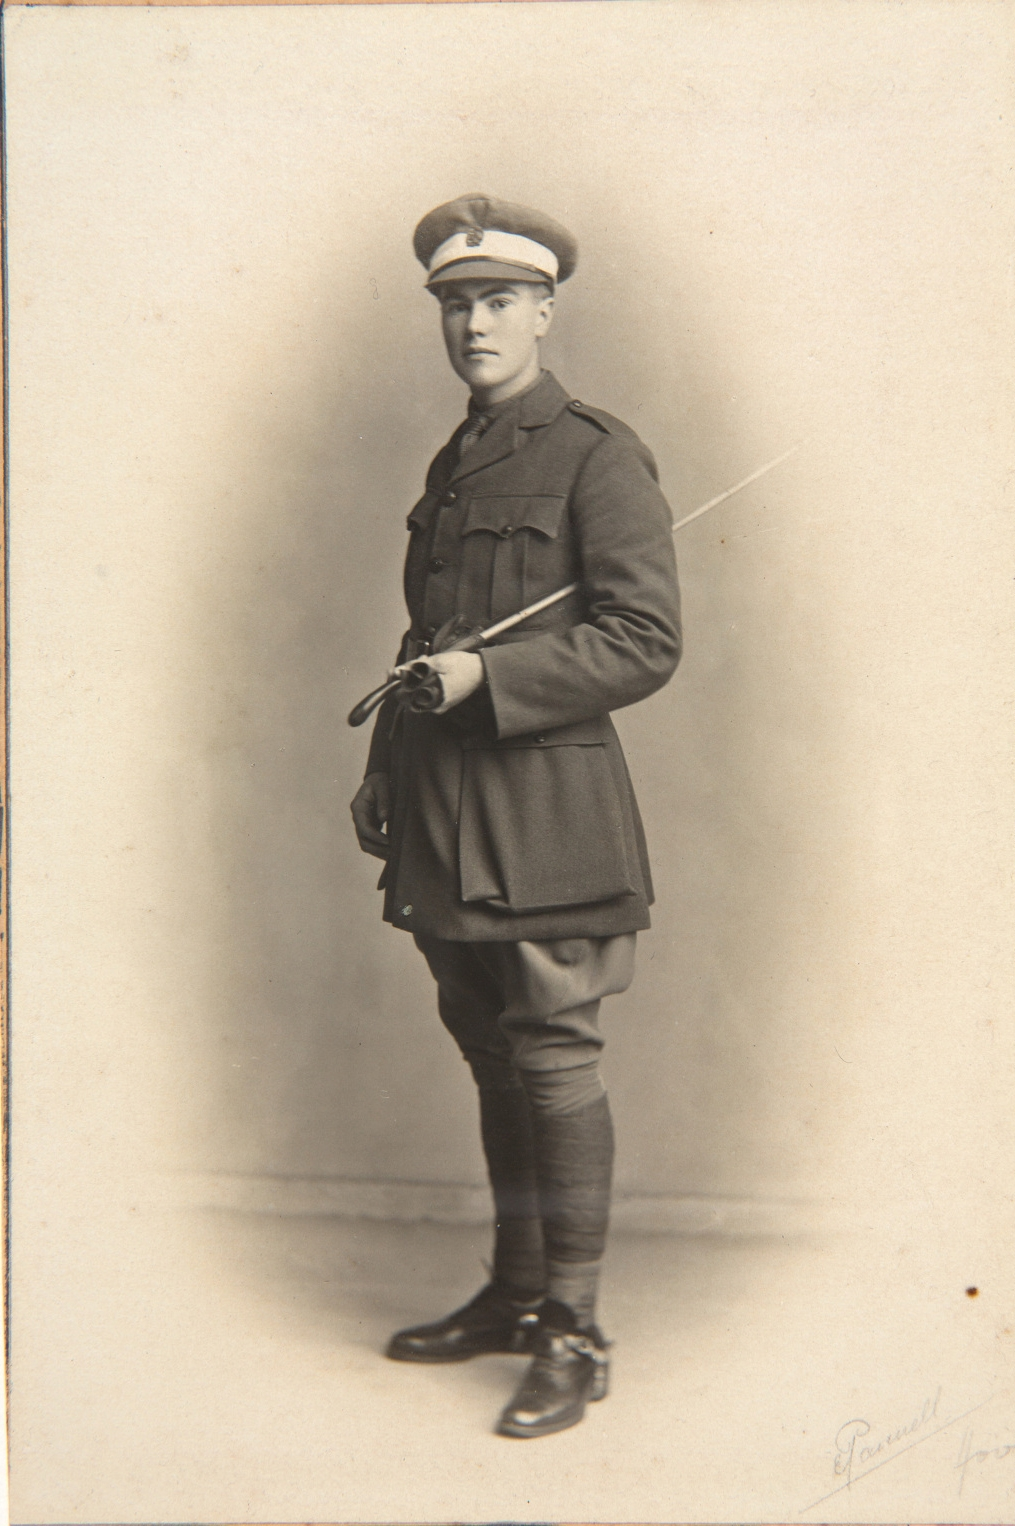 Sepia toned photo of man in uniform.